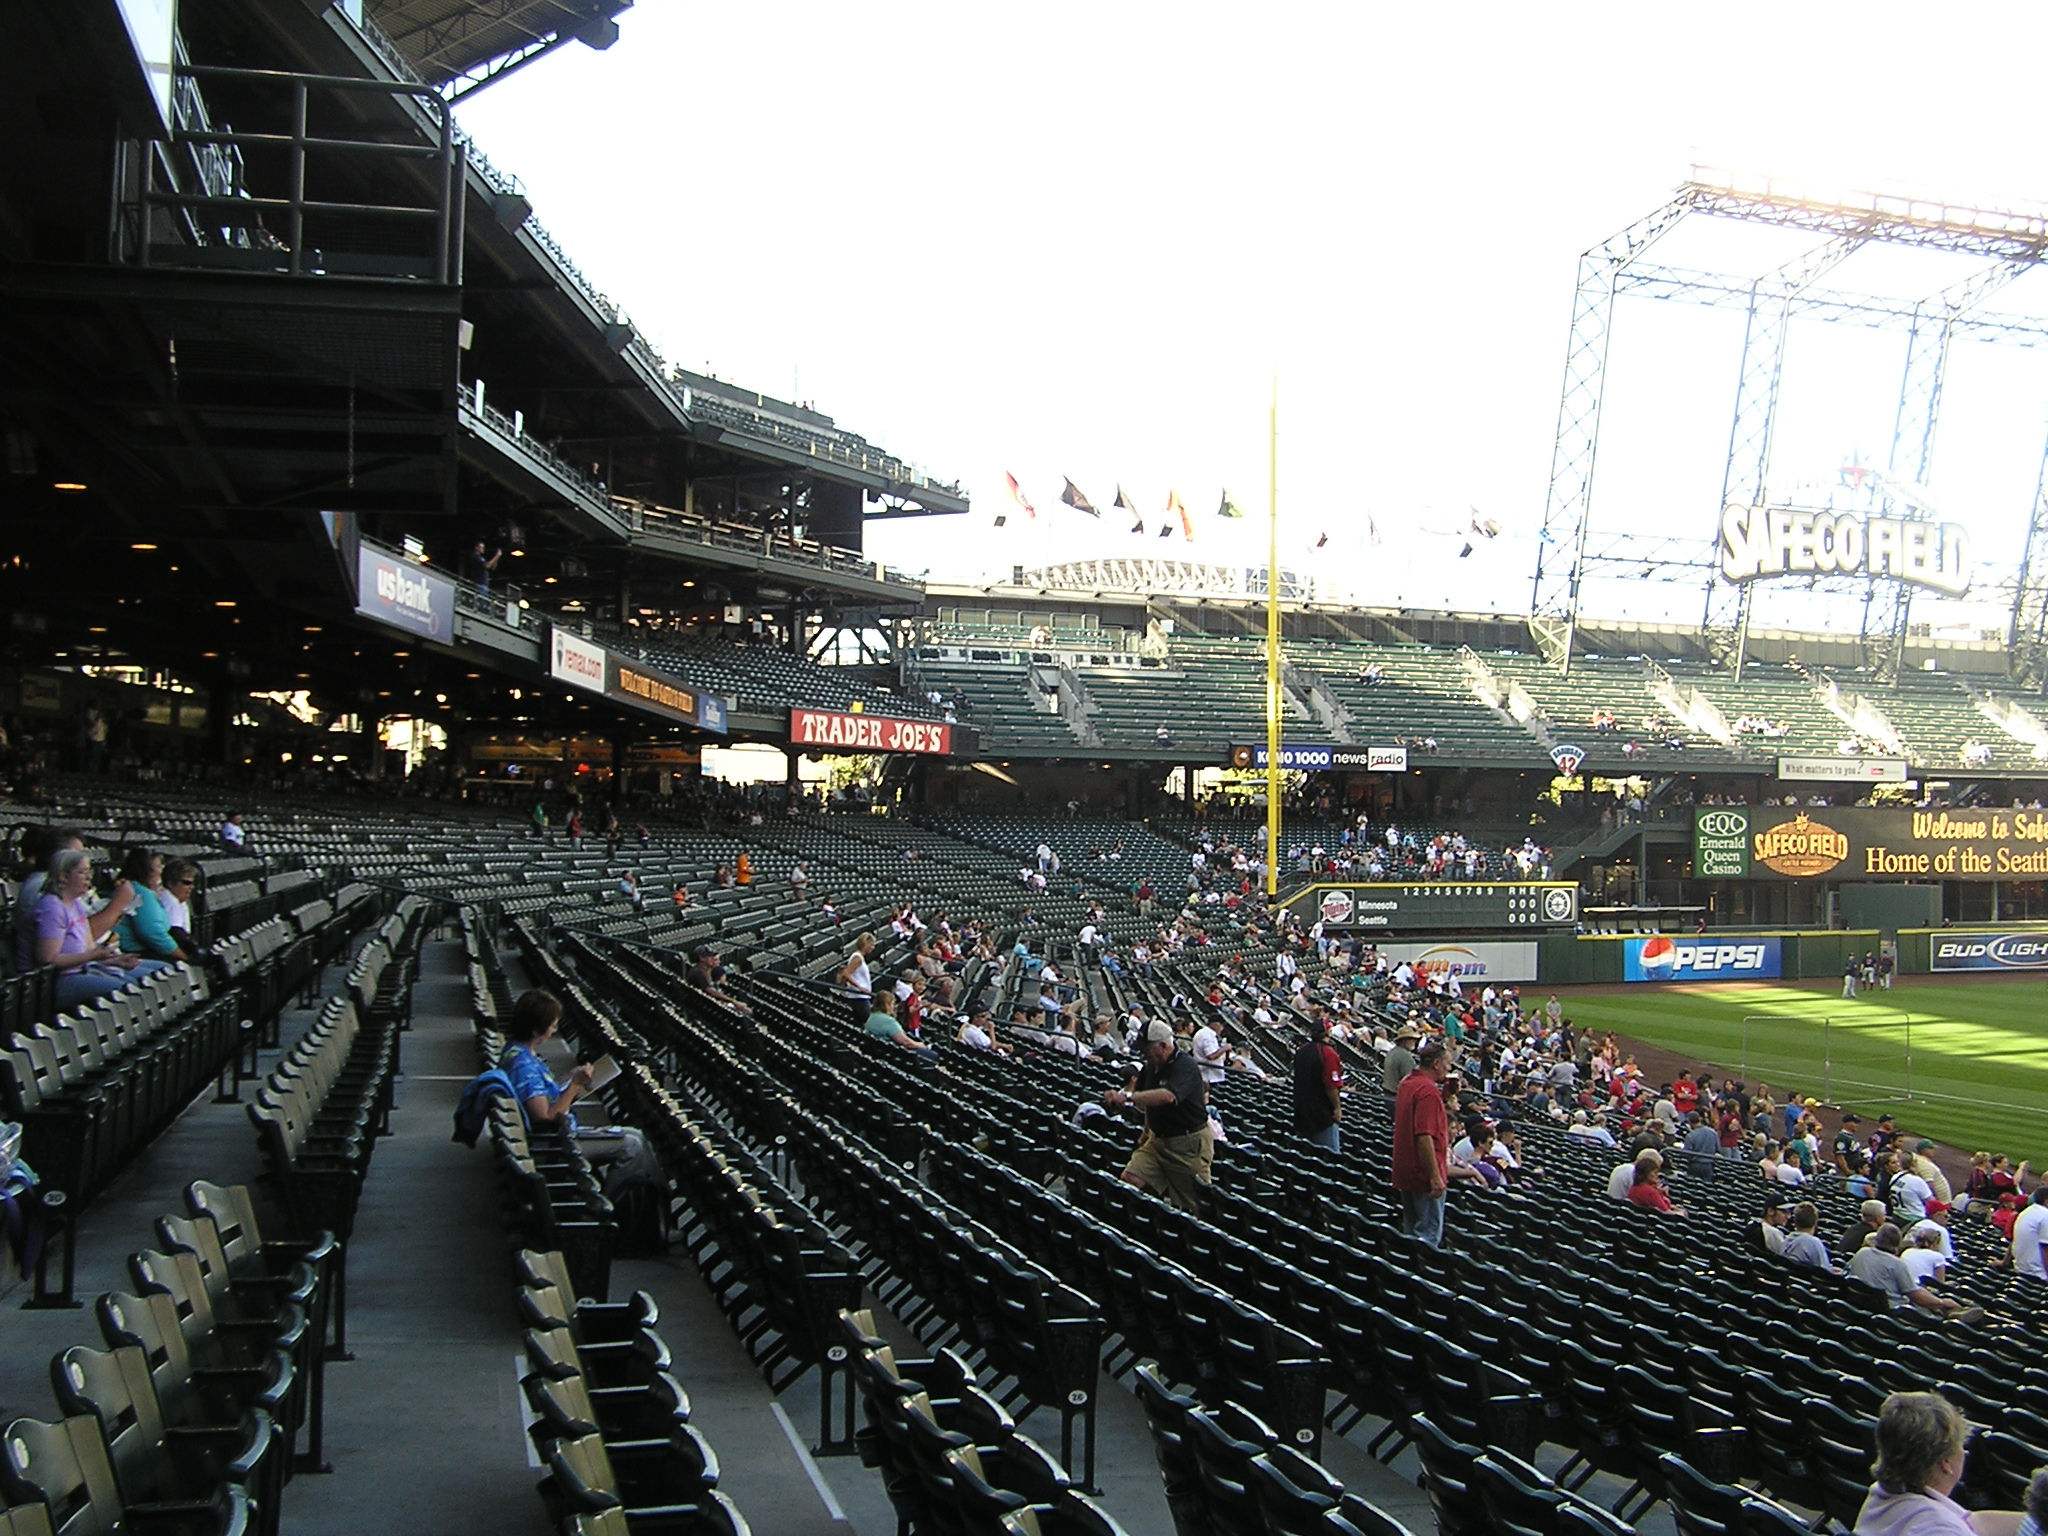 Standing around the Dugouts - Safeco Field